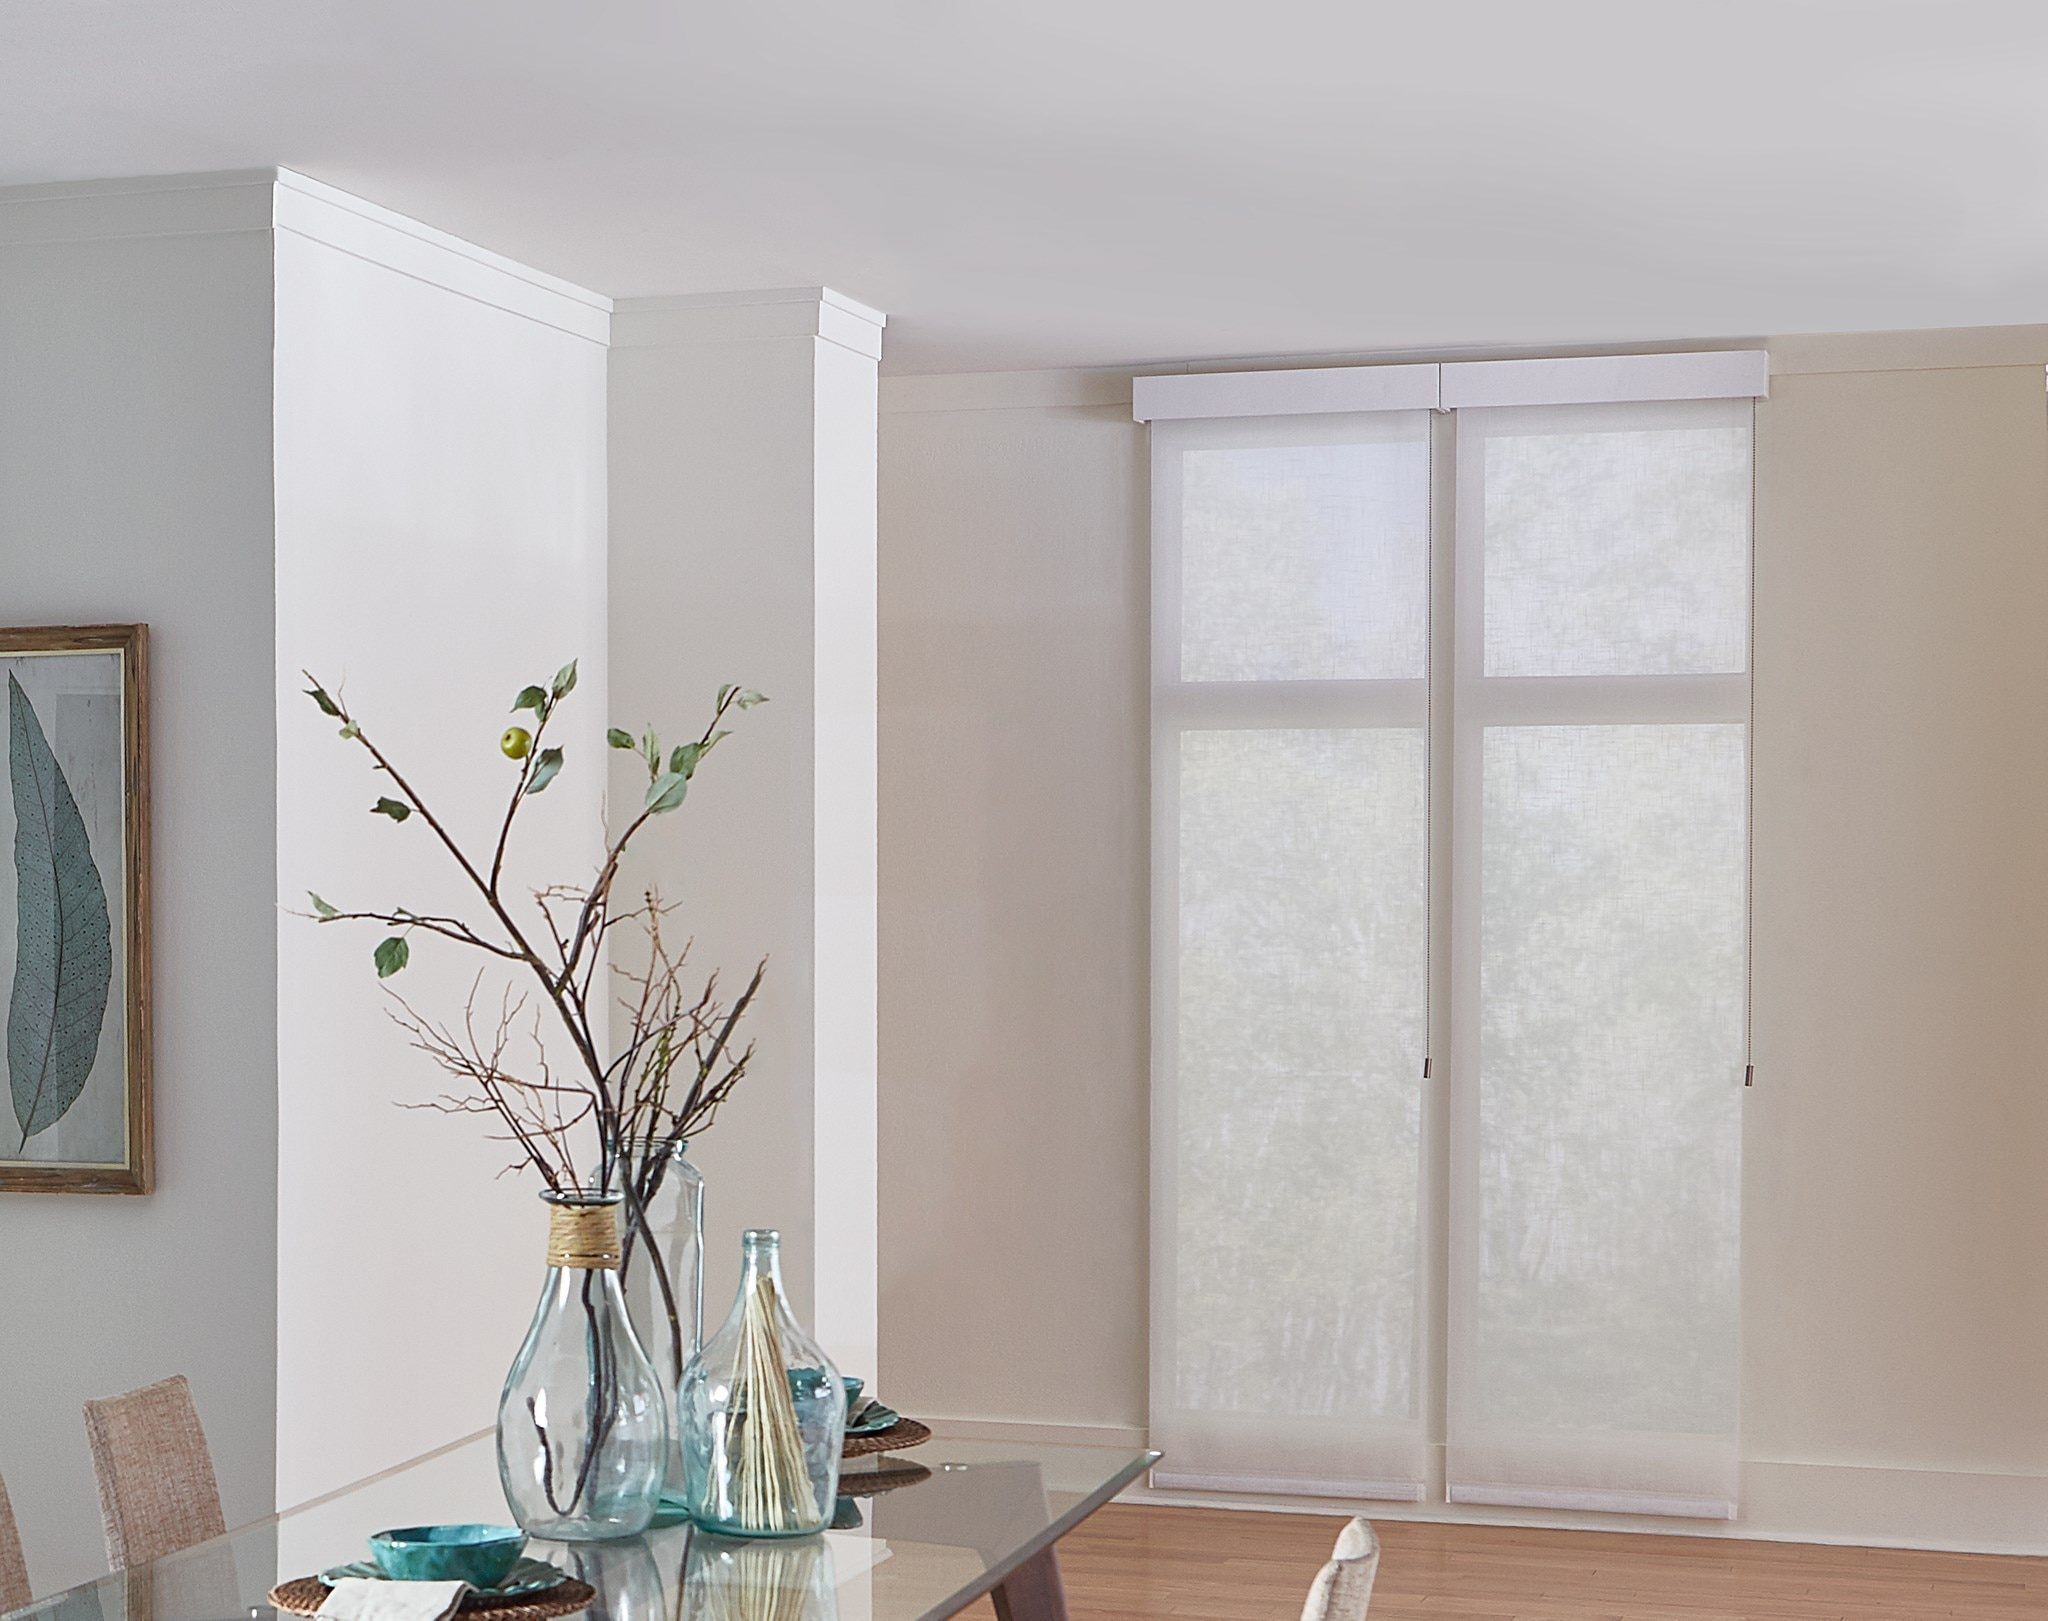 529736_SolarRollerShade_Flaxen11%PureWhite_0100_PullMotor_FabricWrapped4inCornice_A03_Grp3_RS_0418_Coulisse.jpg